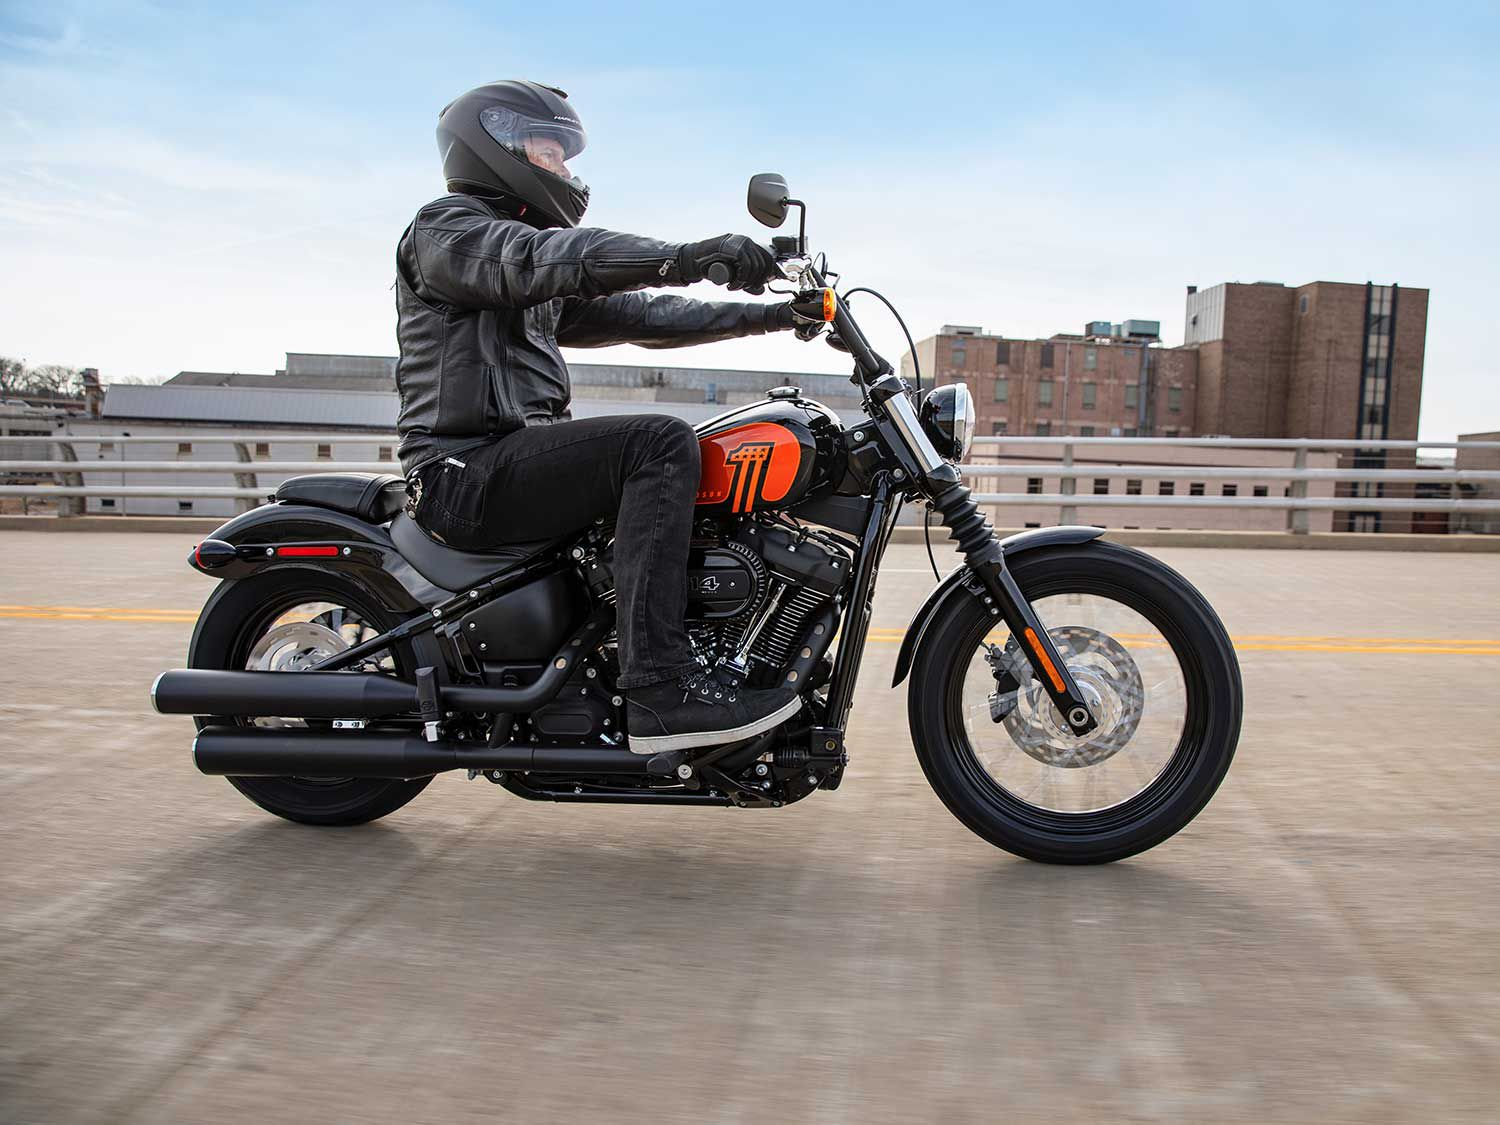 The 114ci Milwaukee-Eight V-twin provides more power and pull than before.